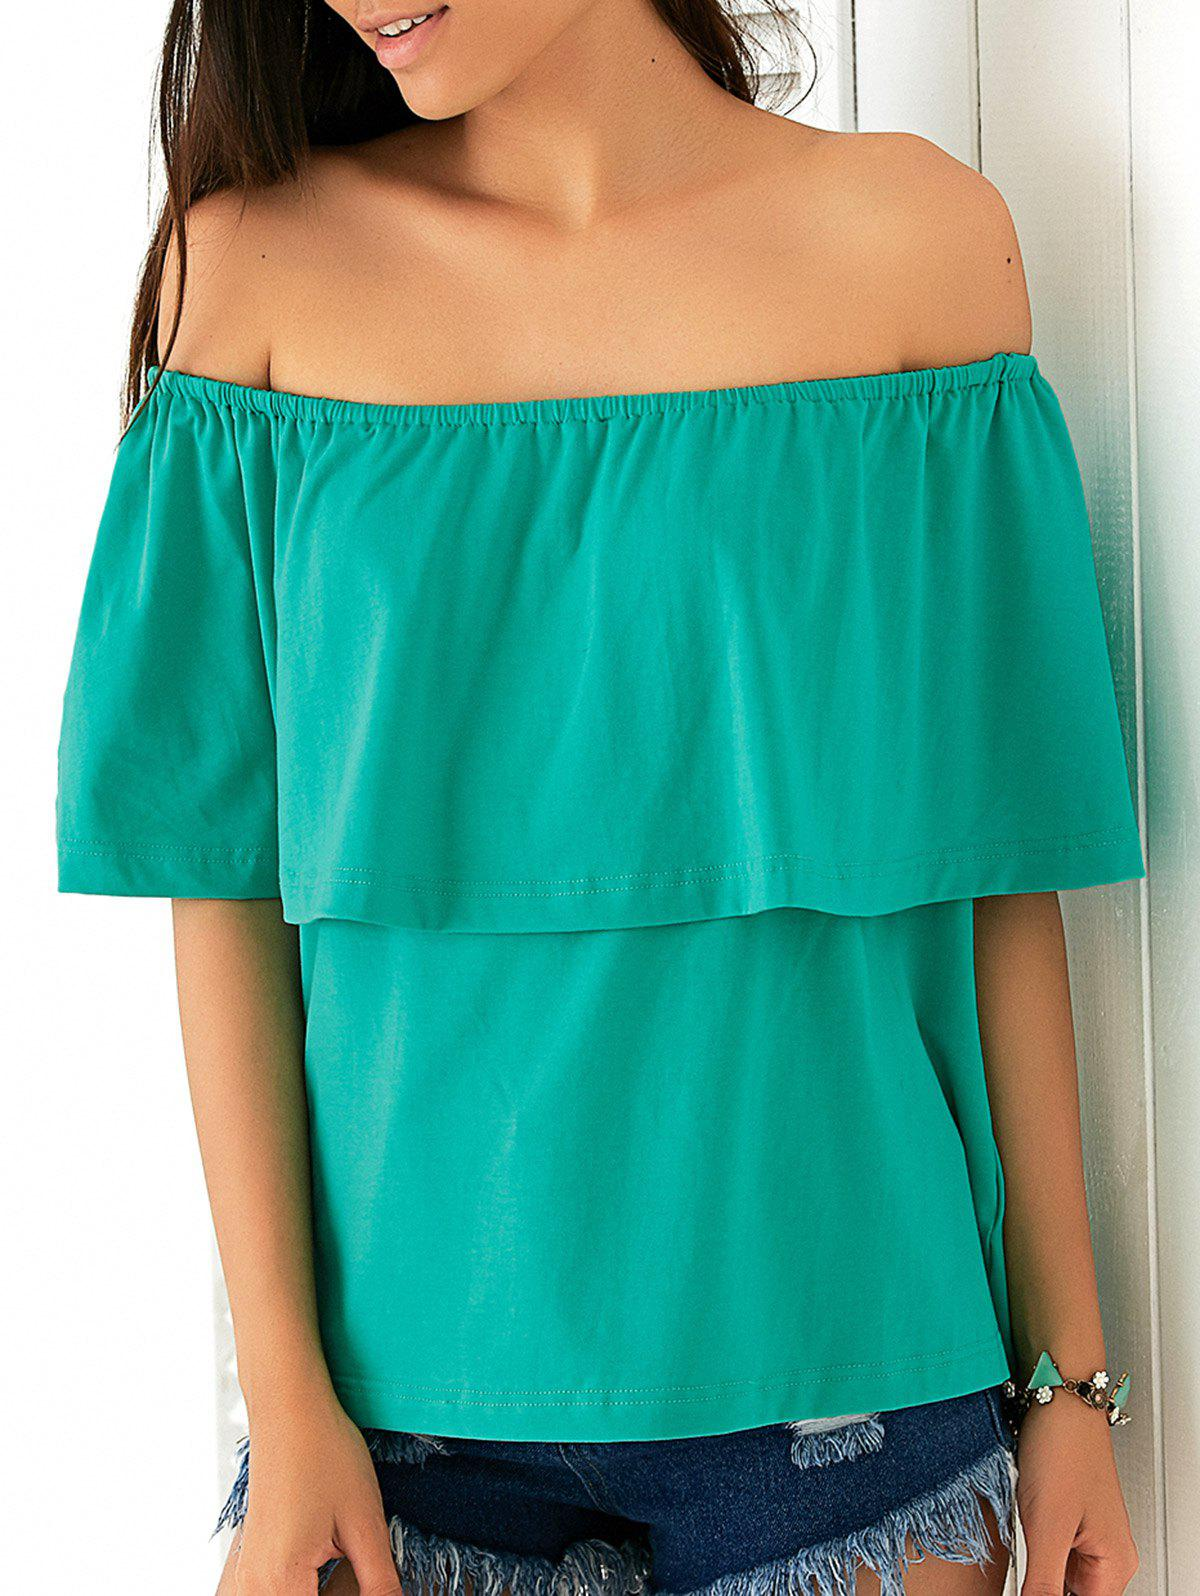 Off-The-Shoulder Overlay Blouse - GREEN 2XL